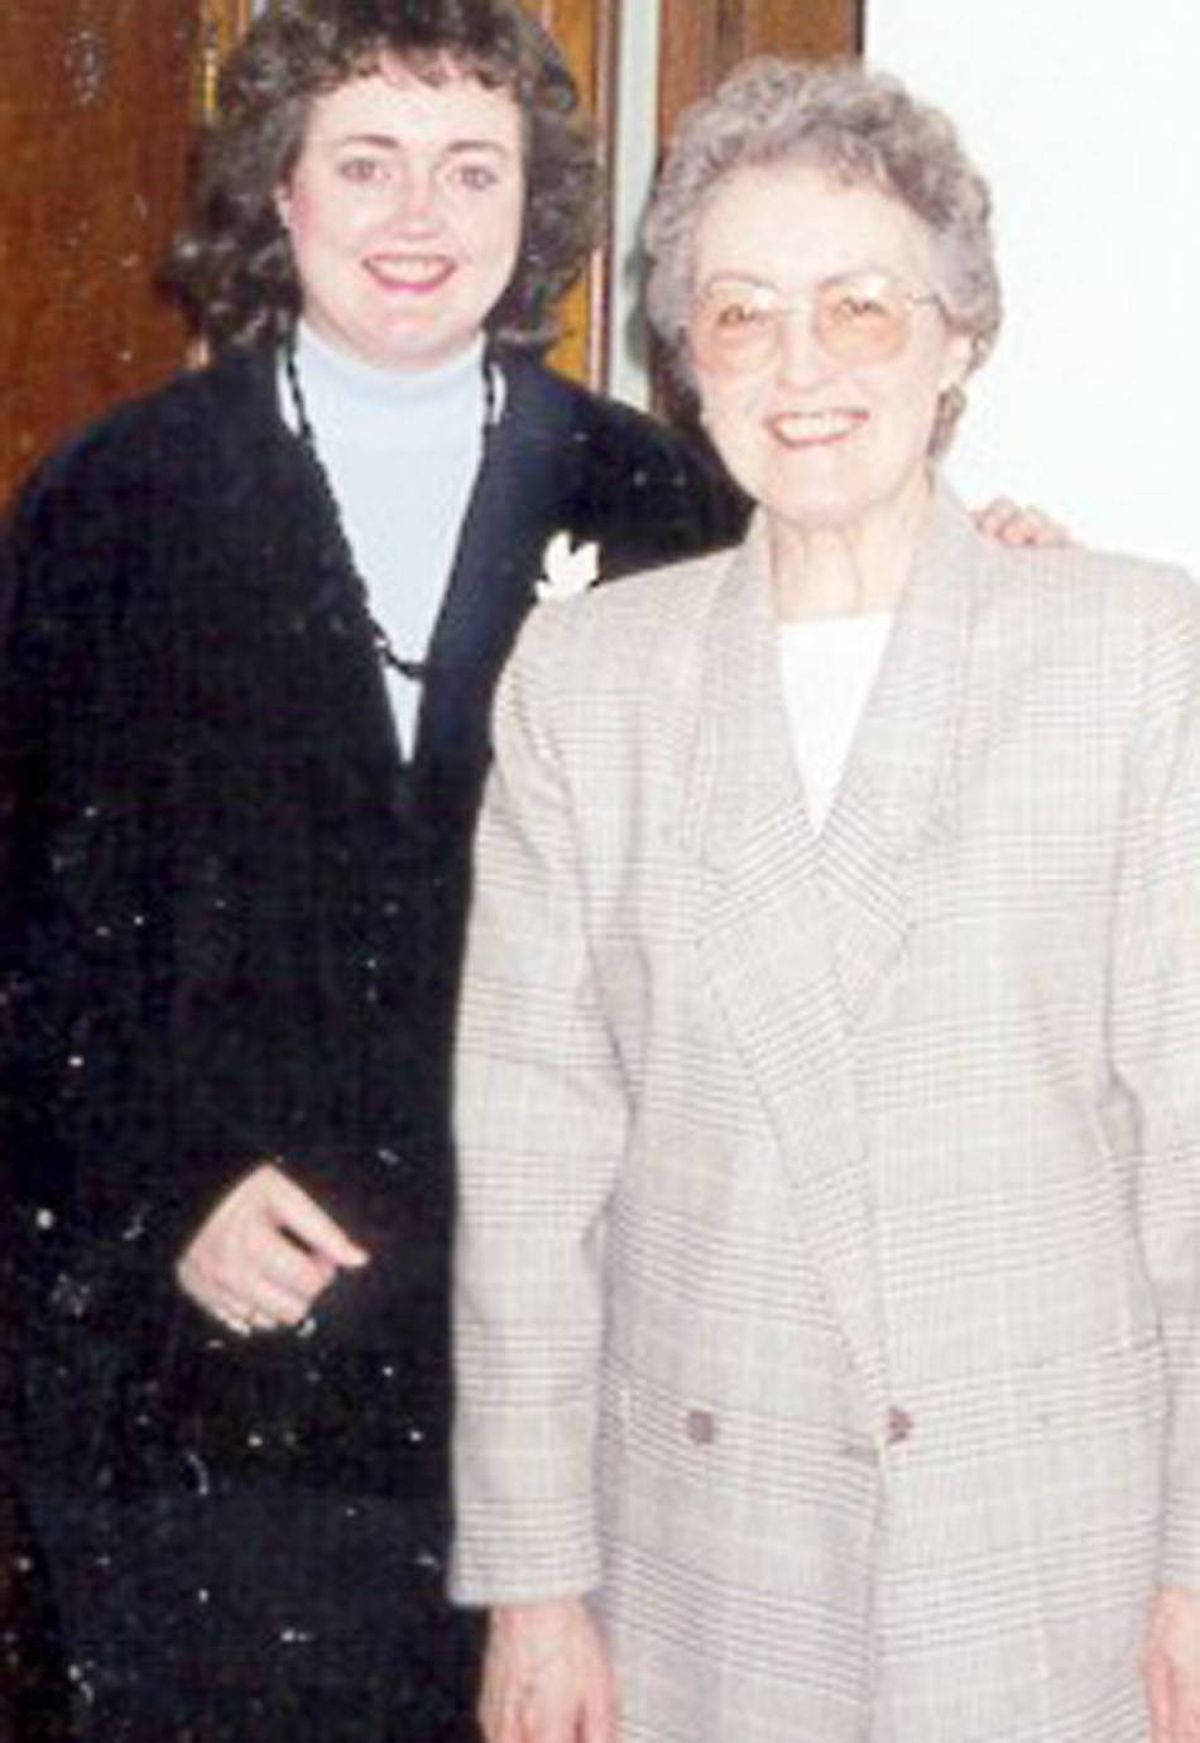 That's Mom and me just before my college graduation ceremony in 1999. As a mature student in computer studies, I was often overwhelmed by the work demands. But Mom's steady pep talks kept me on track!